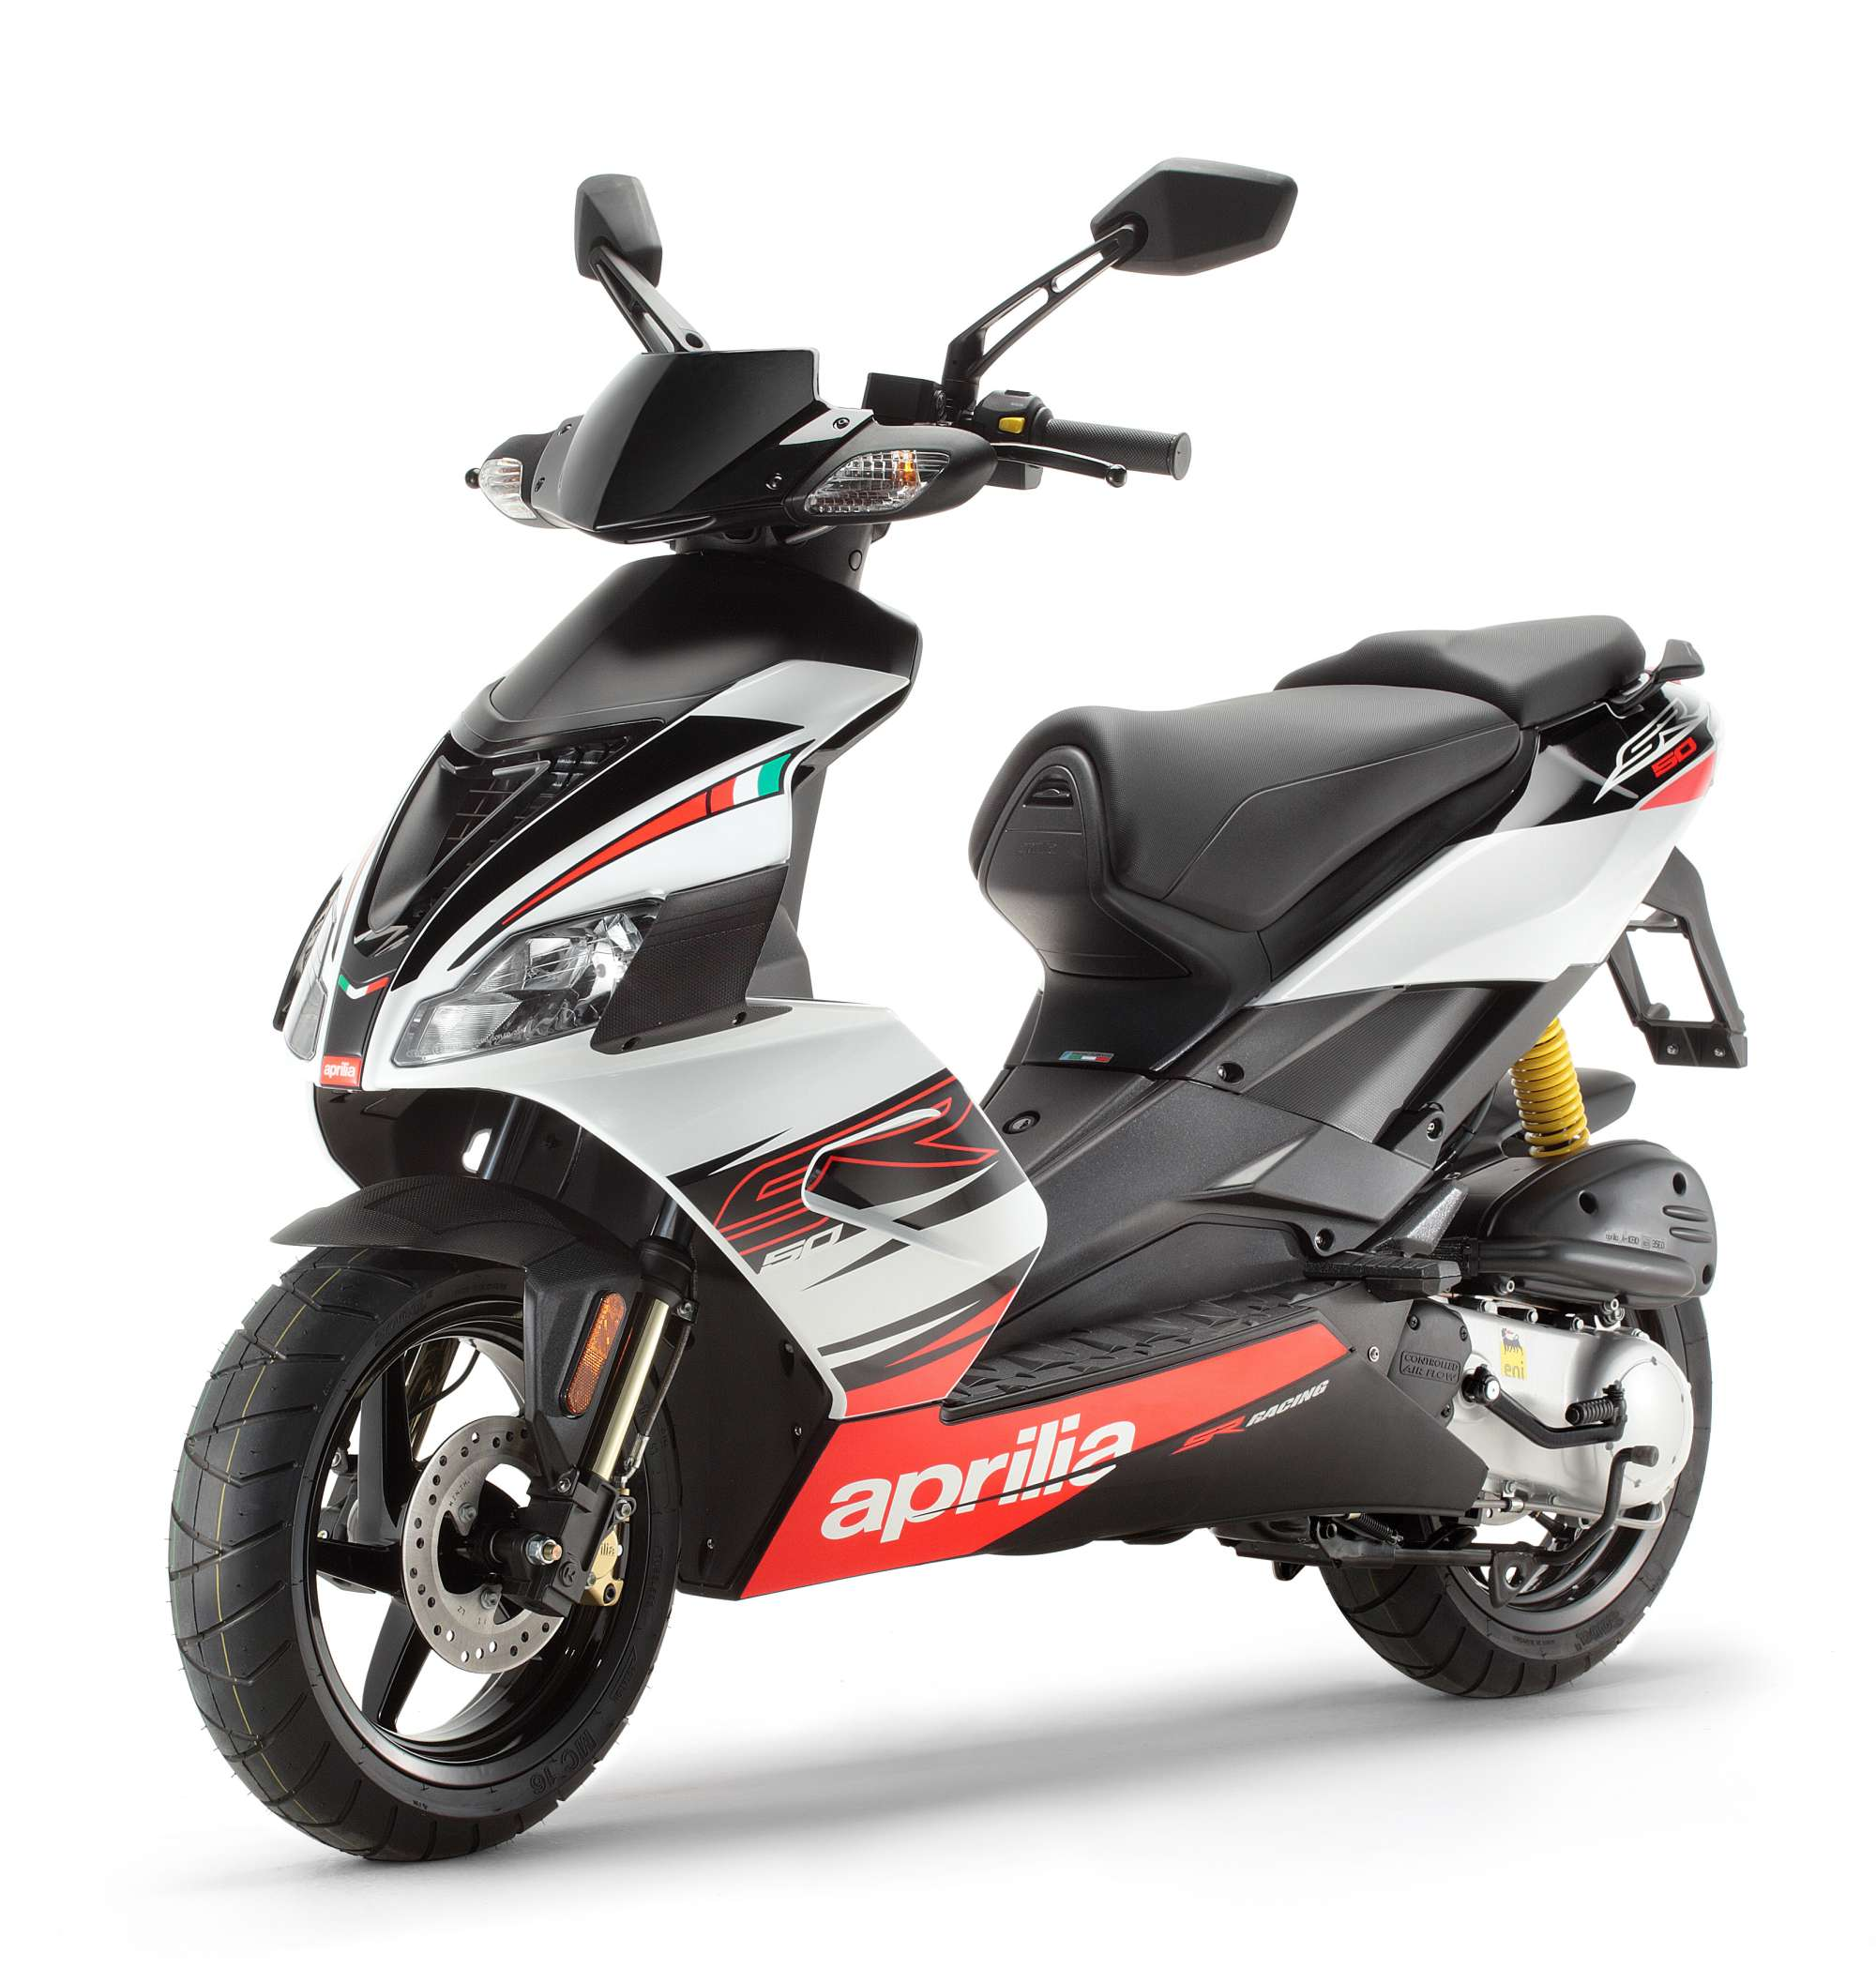 pin aprilia sr 50 r motosalonecz on pinterest. Black Bedroom Furniture Sets. Home Design Ideas